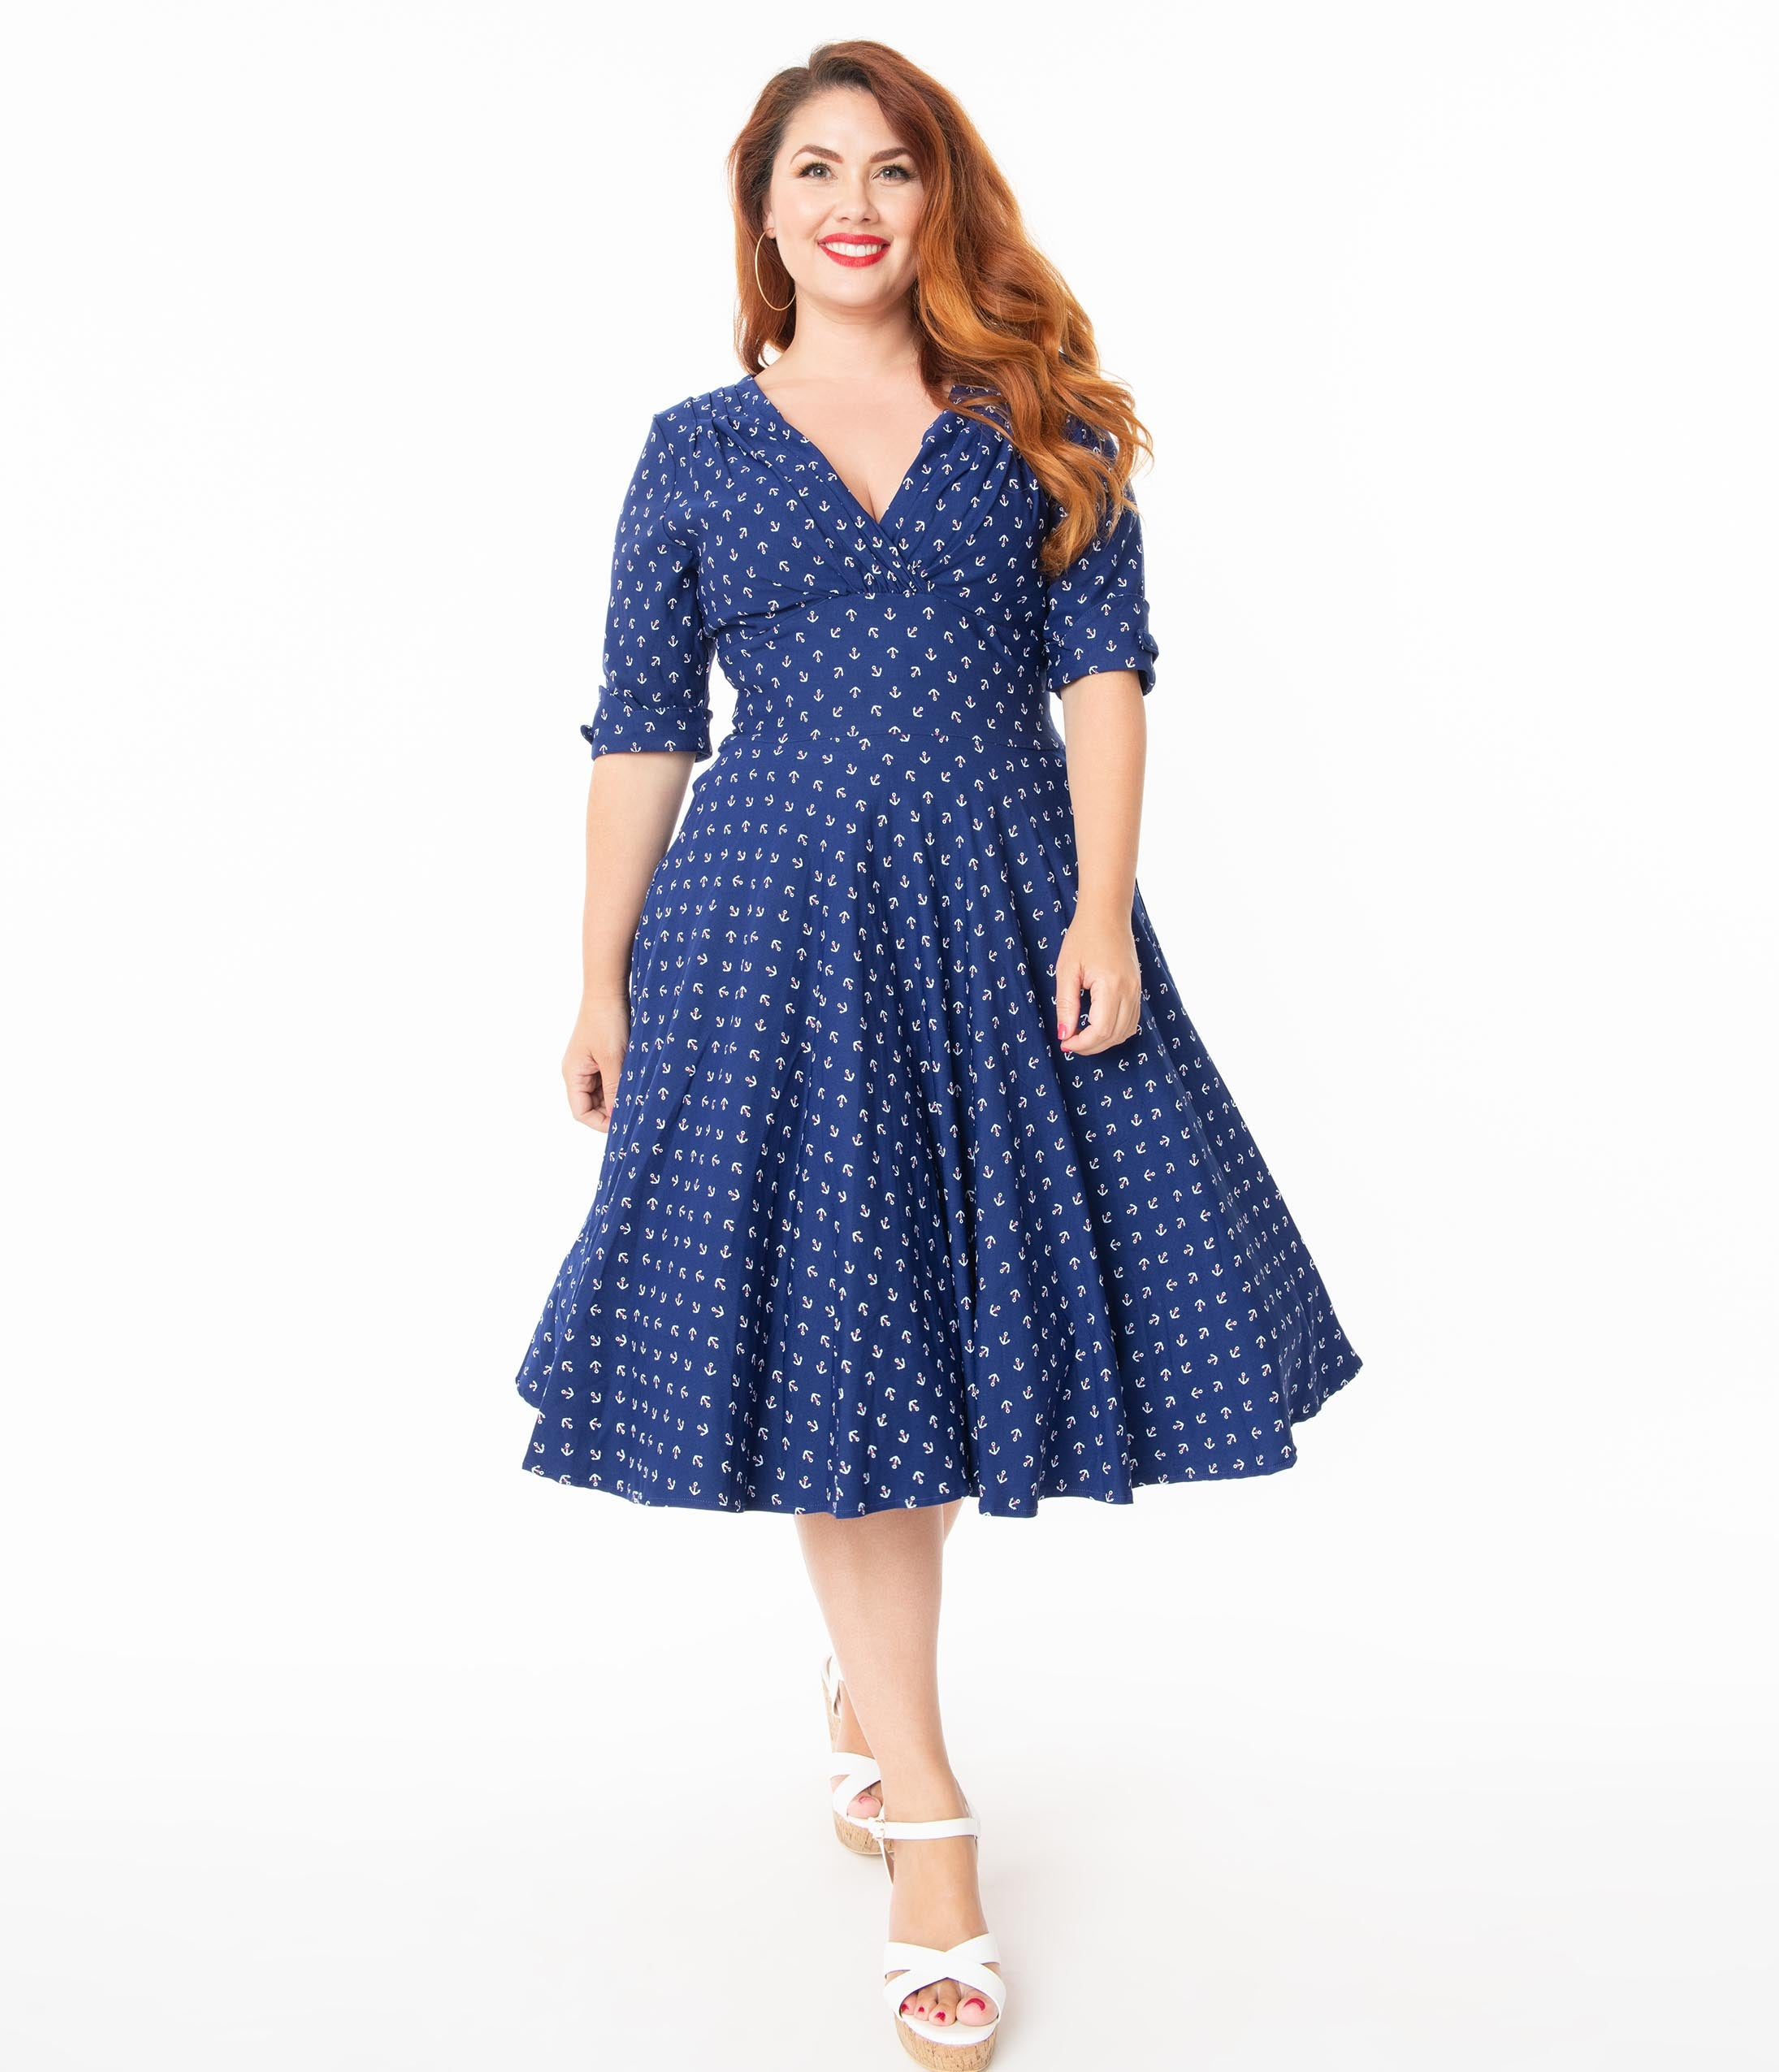 1950s Dresses, 50s Dresses | 1950s Style Dresses Unique Vintage Plus Size 1950S Blue Anchor Print Delores Swing Dress With Sleeves $92.00 AT vintagedancer.com